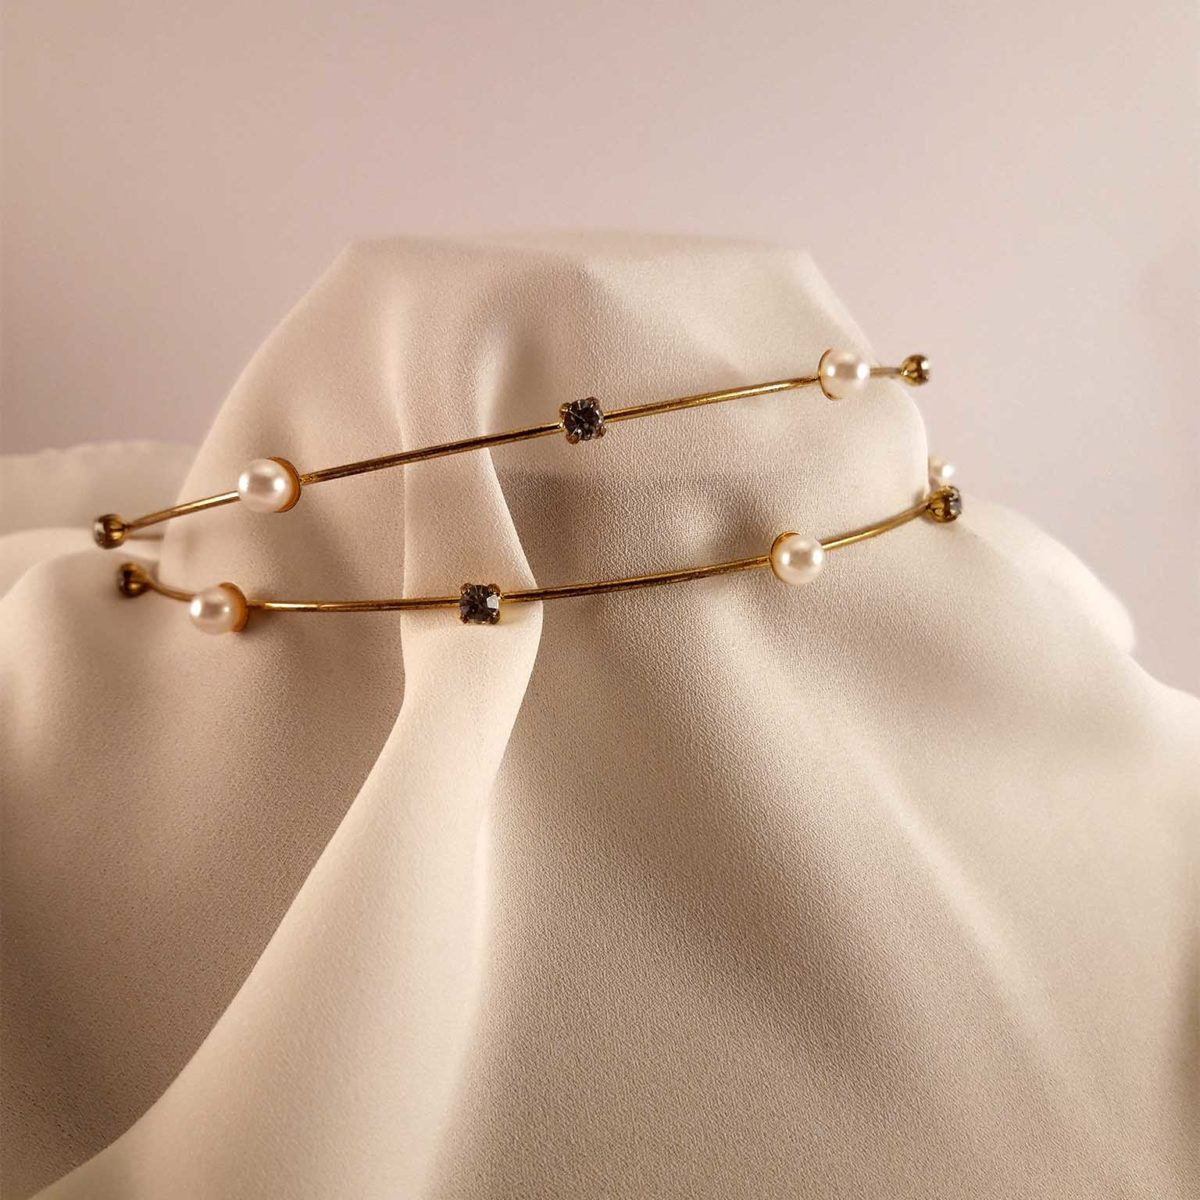 Golden Headband With Pearls And Diamonds